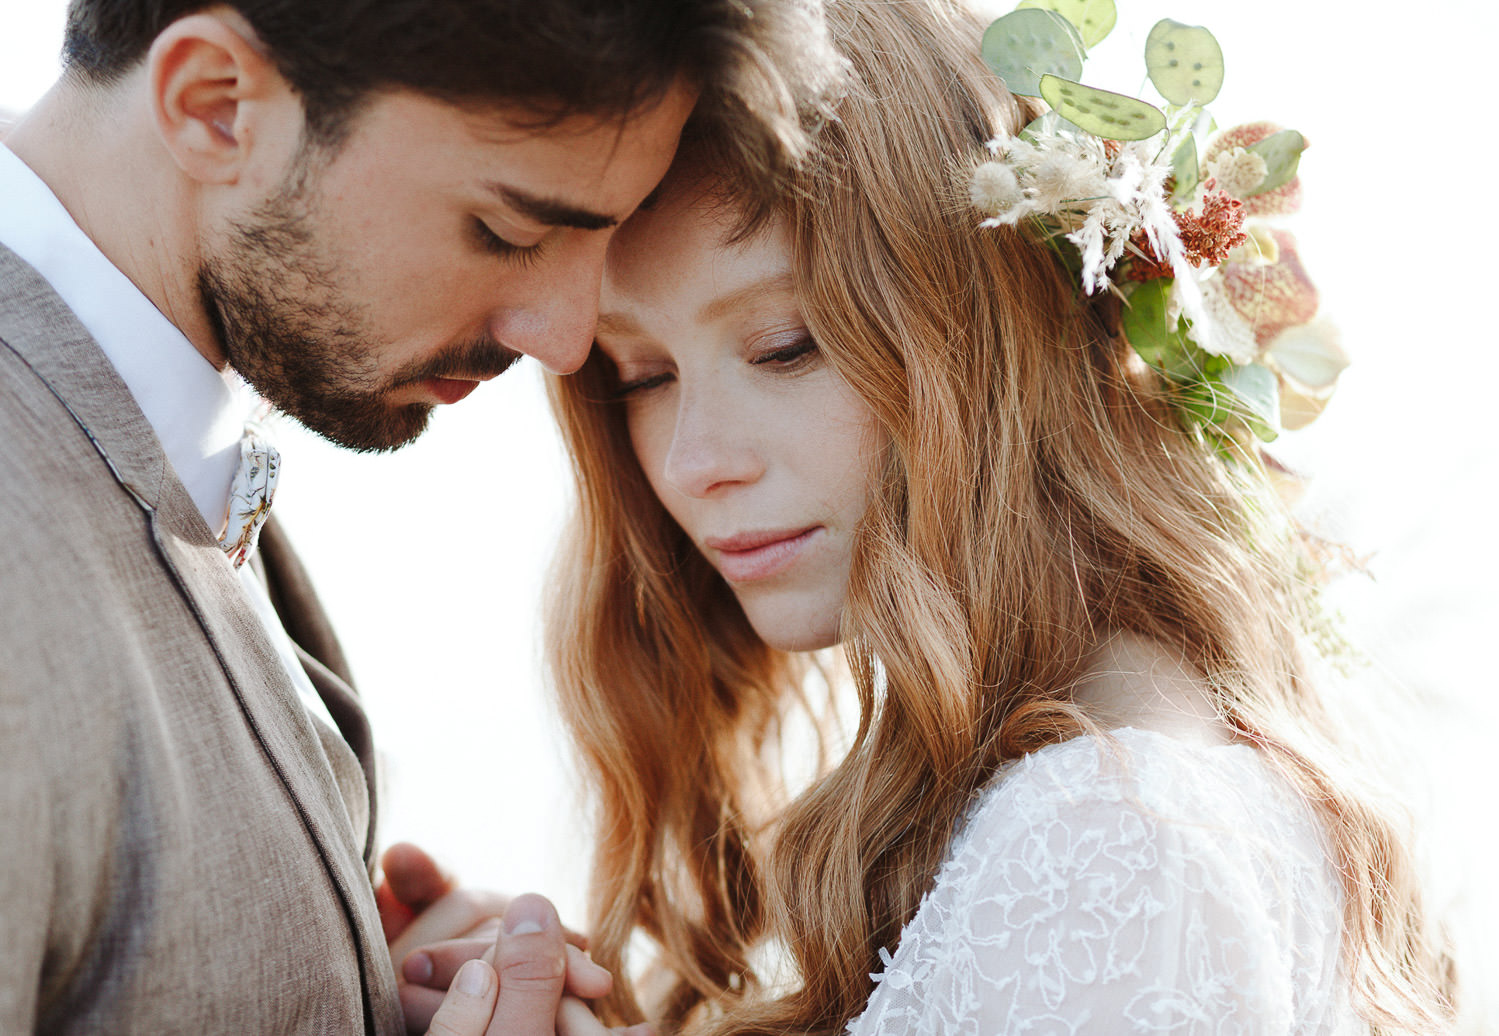 Romantic elopement in Puglia - Photo: Camilla Anchisi - Italian destination wedding photographer